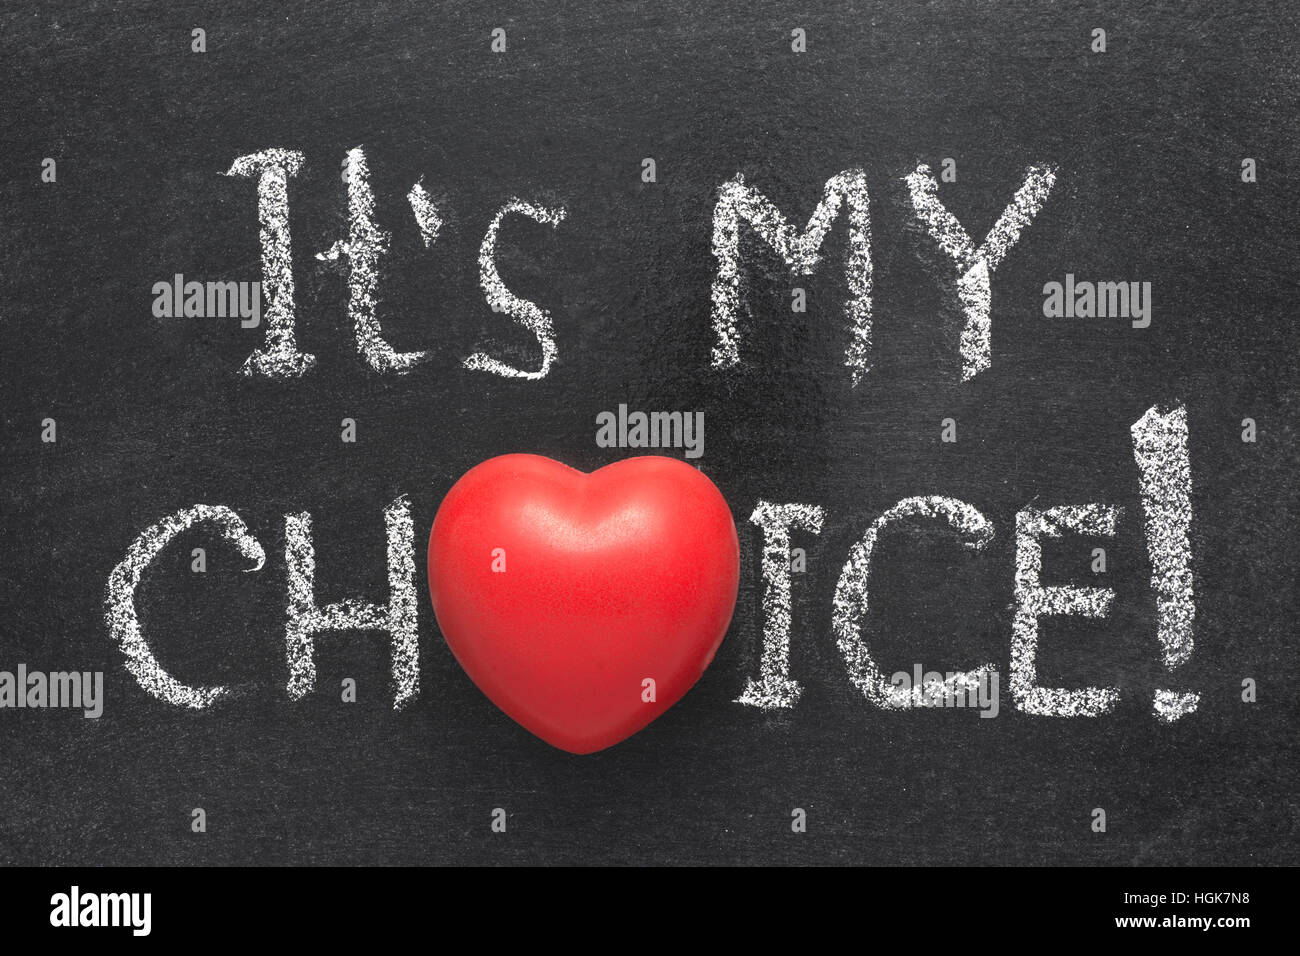 Its My Choice Exclamation Handwritten On Blackboard With Heart